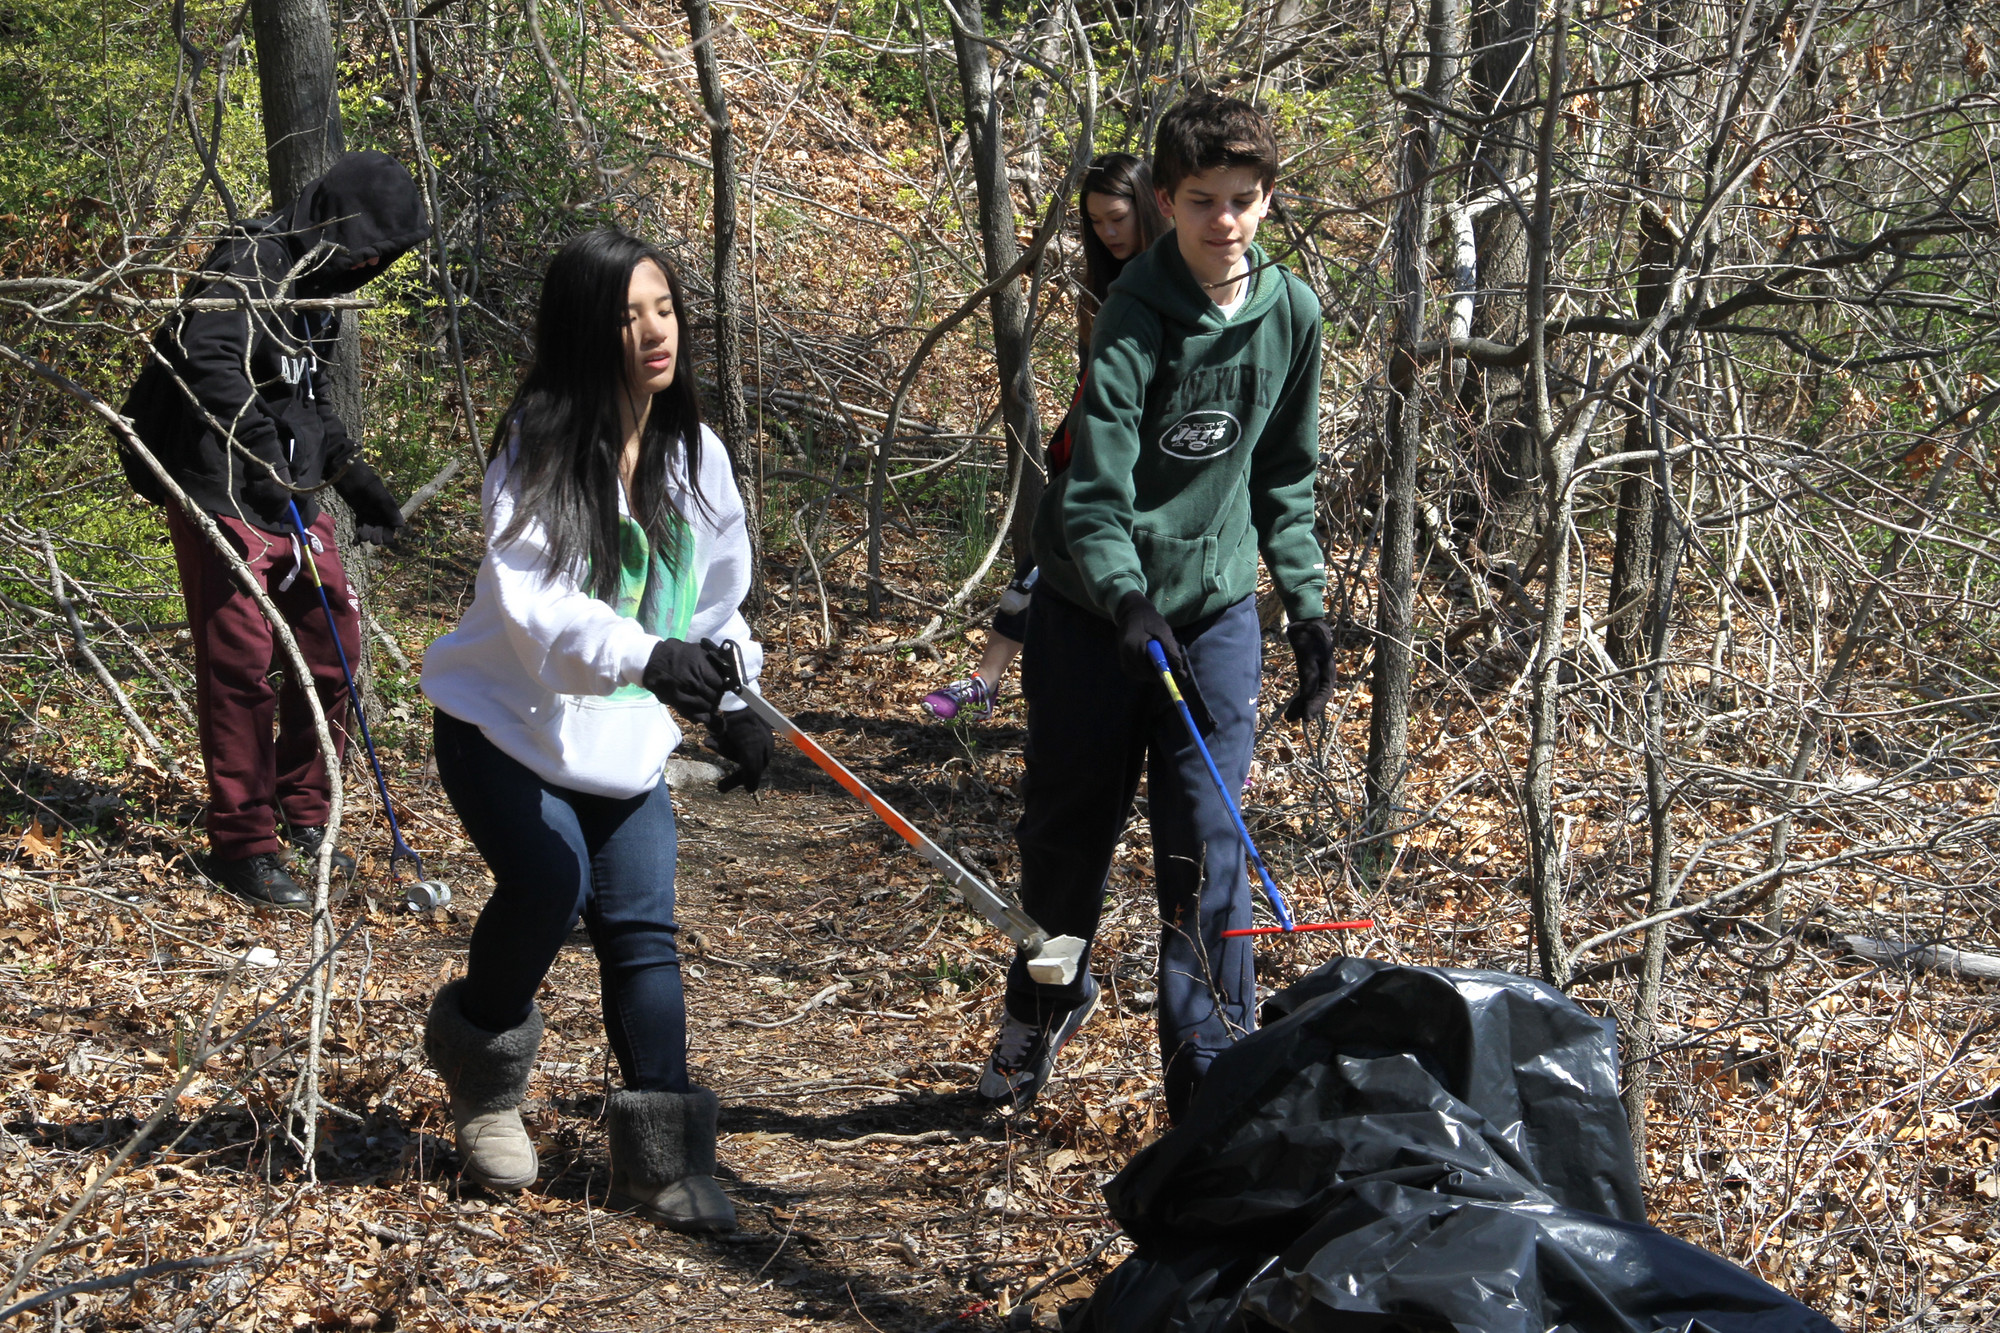 Approximately a ton of garbage was picked up during the cleanup. Hewlett High School students Zeke Malaney, Ali Pilao and Reiner Scherzinger pitched in.